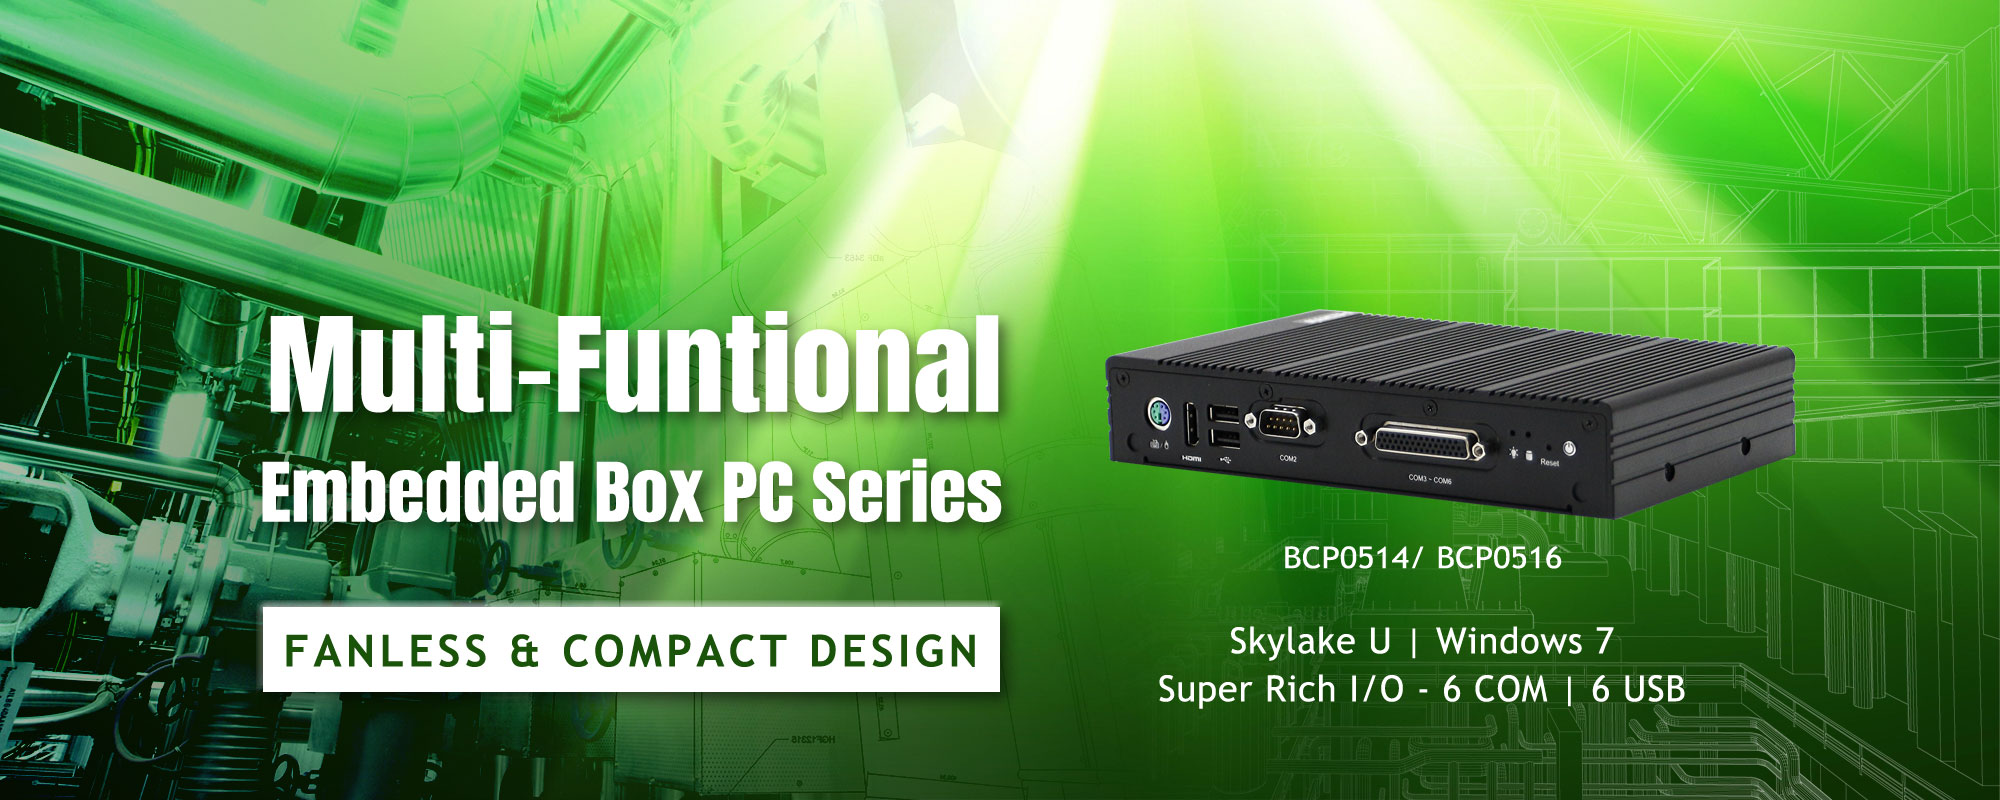 Multi-Funtional Embedded Box PC Series, BCP0514, BCP0516